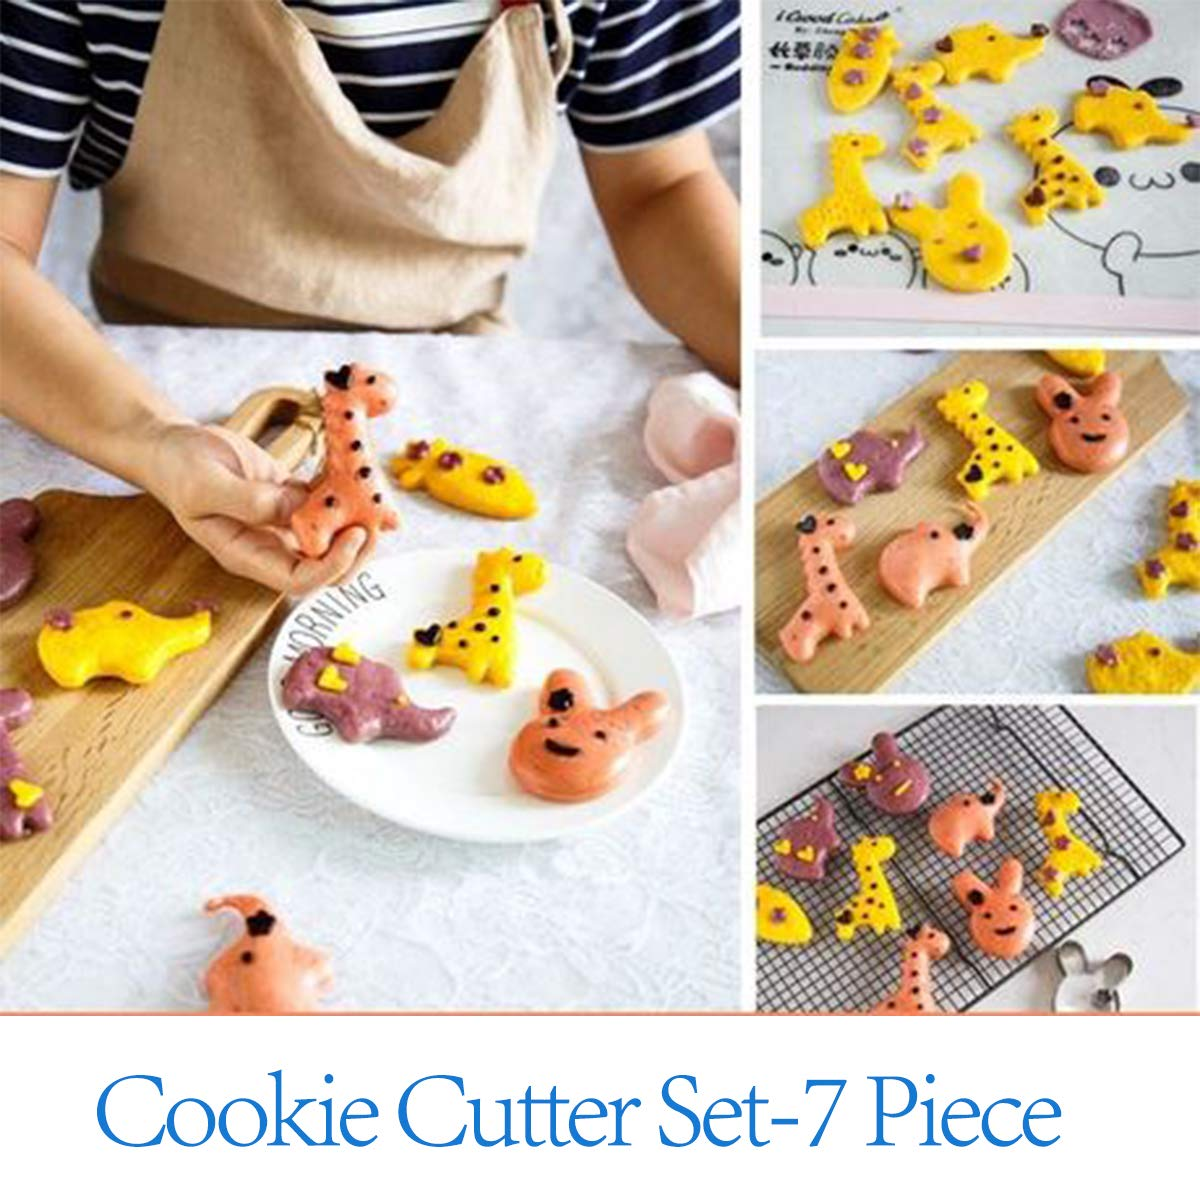 Cookie Cutters Set - Cookie Cutters Mini Geometric Shapes Cookie Cutters, Vegetable Shape Cutters for Kitchen, Baking, Halloween & Christmas,12 Pcs (Animal) 51mHAfVmqLL